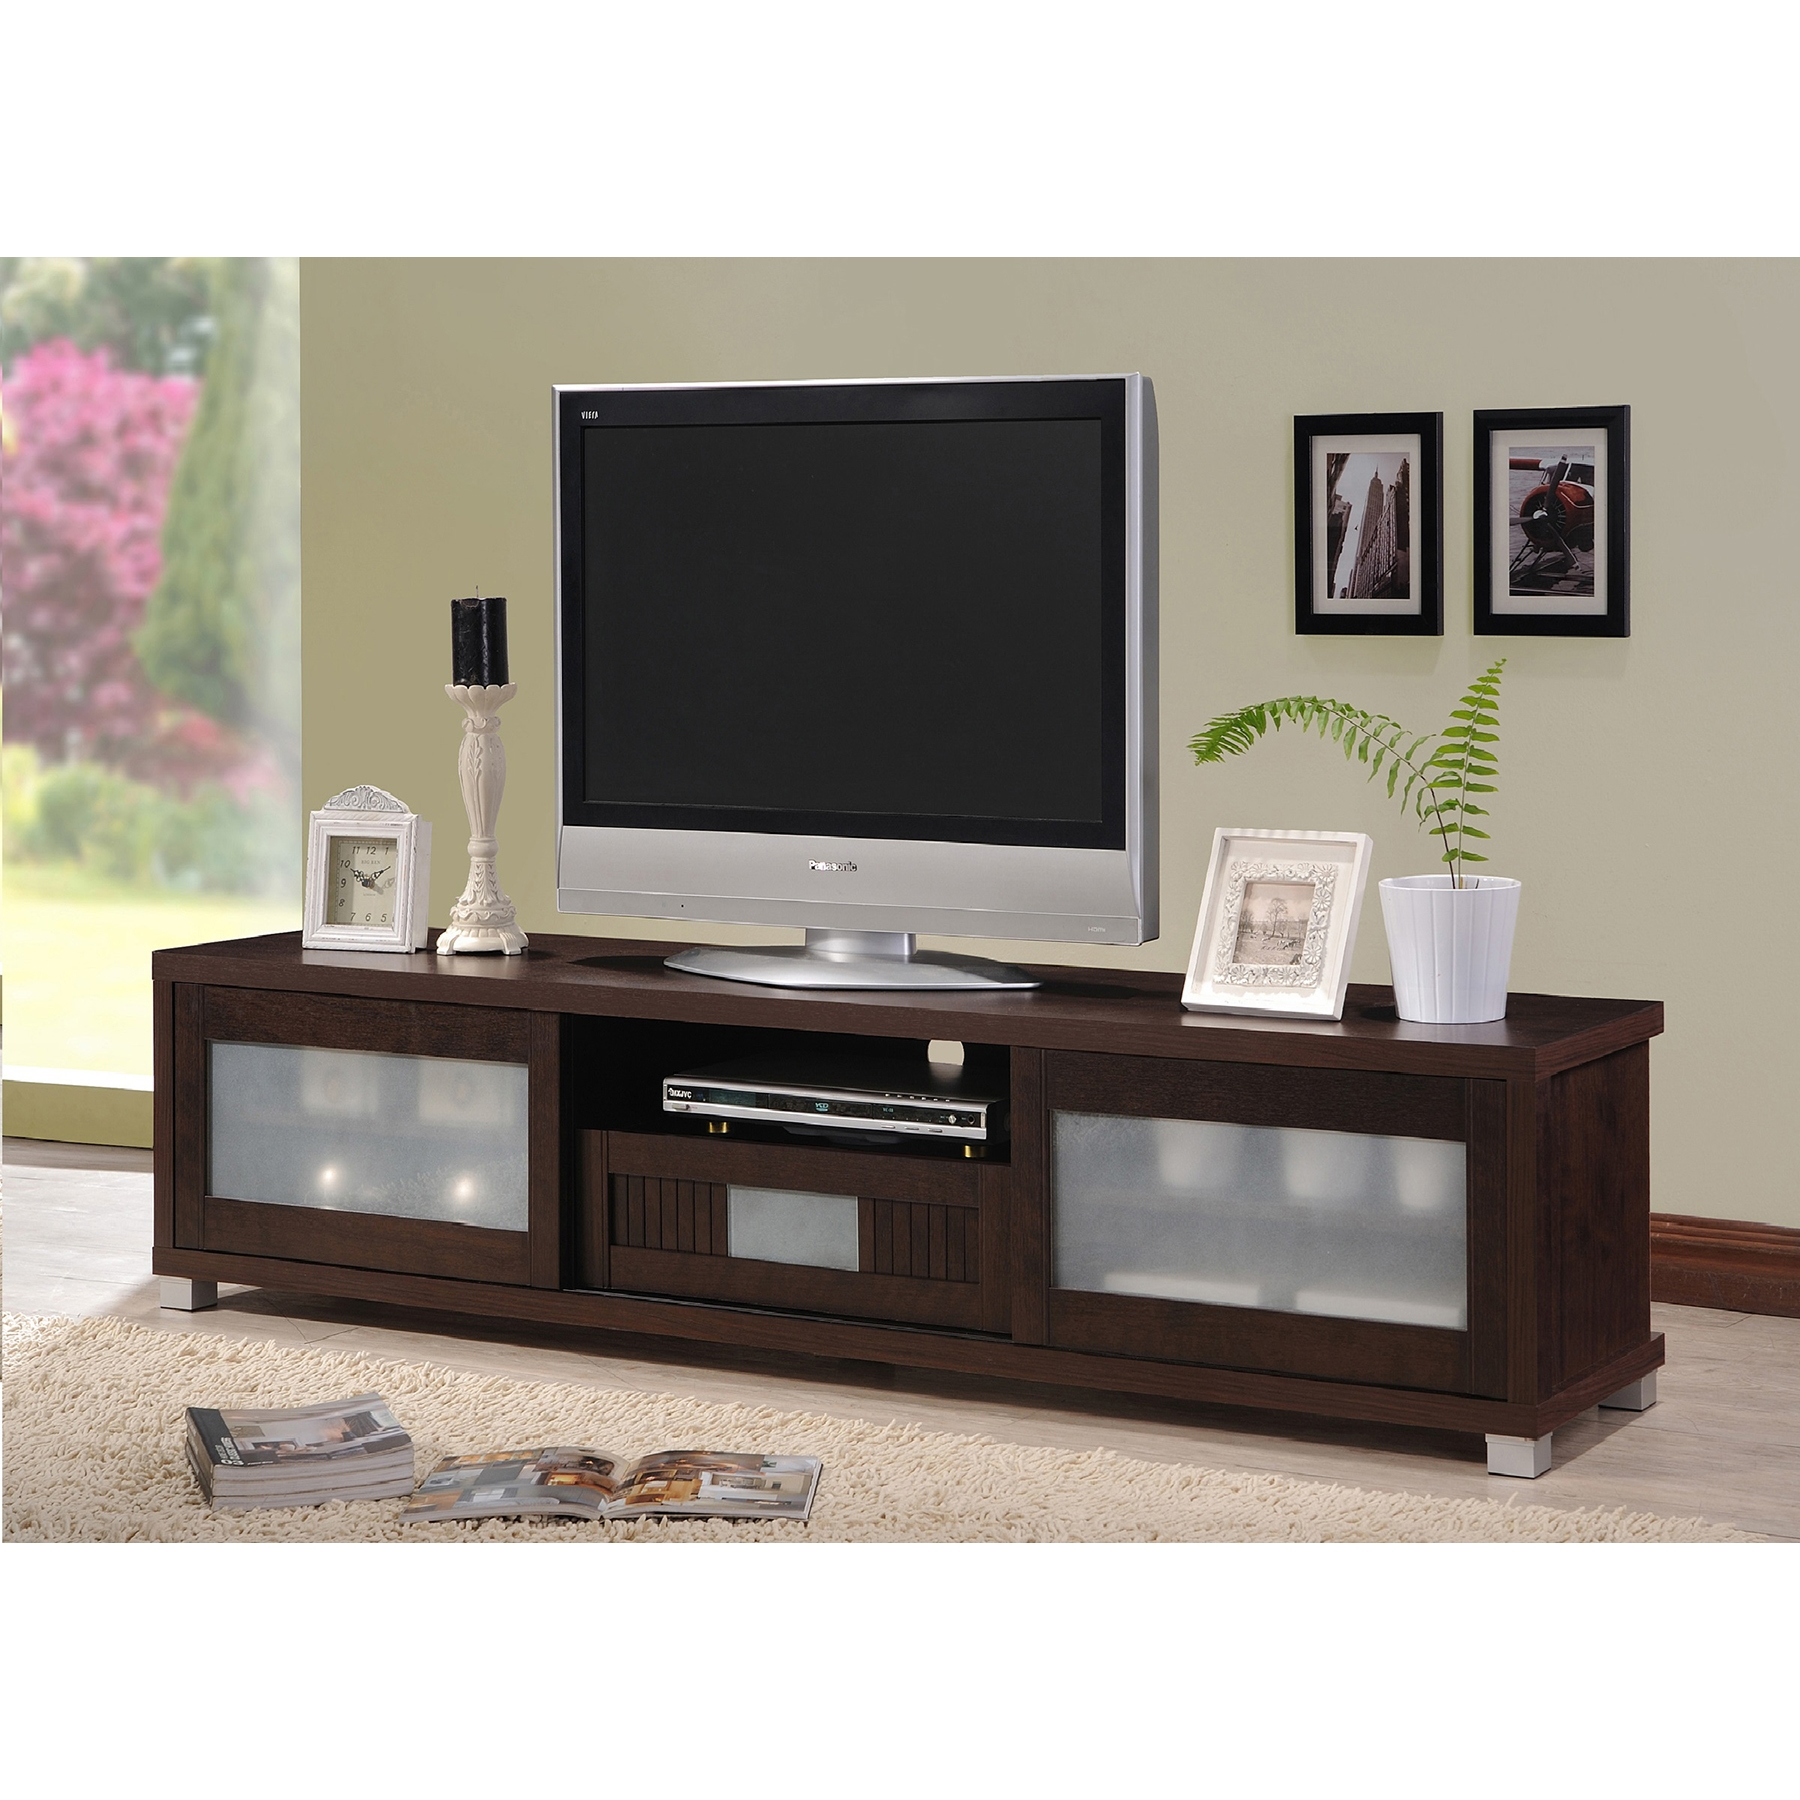 Superb ... Baxton Studio Gerhardine Dark Brown Wood 70 Inch TV Cabinet With 2  Sliding Doors And